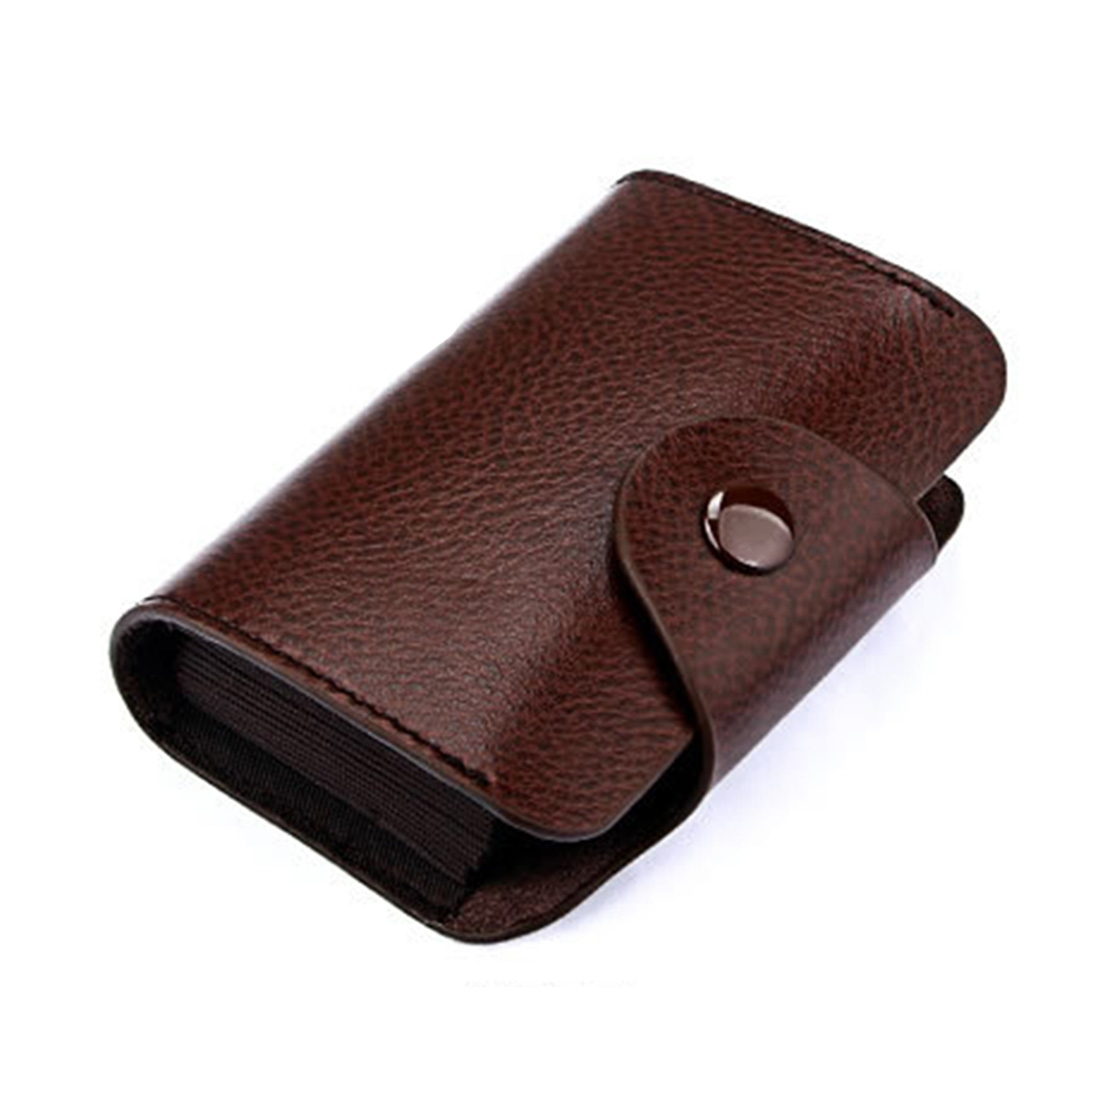 KB39 Simple Fashion Genuine leather Organ Card Bag Candy Color Card Package (Coffee)